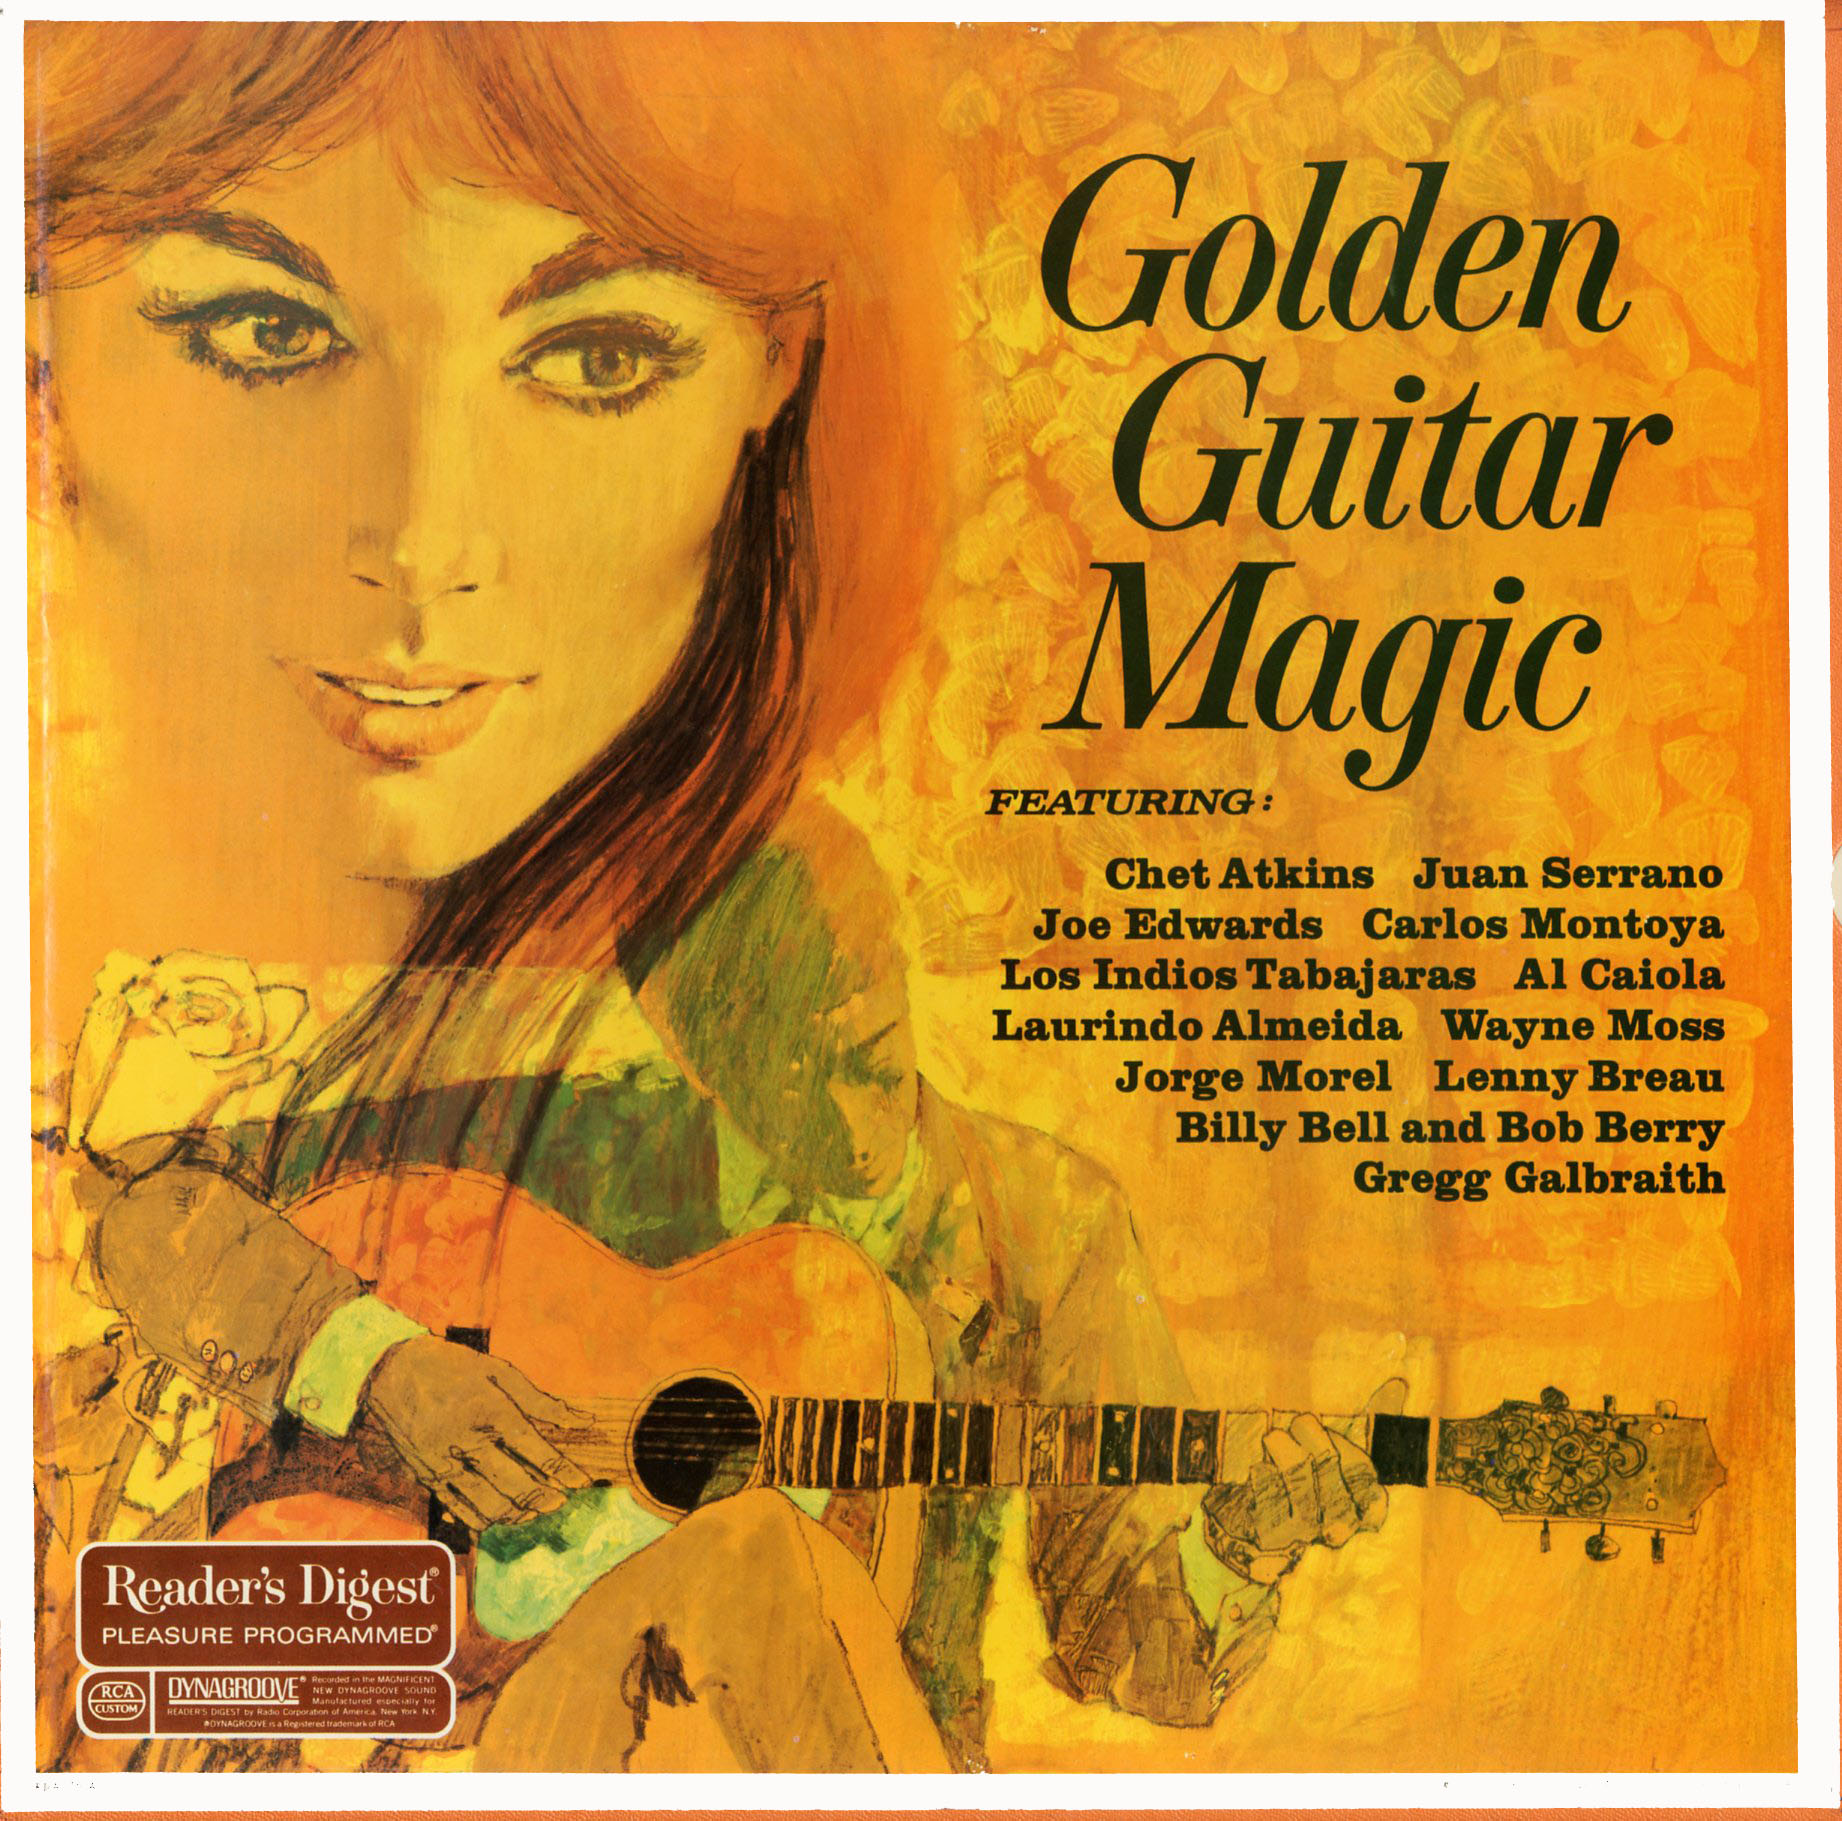 RDA75 - Golden Guitar Magic on CD